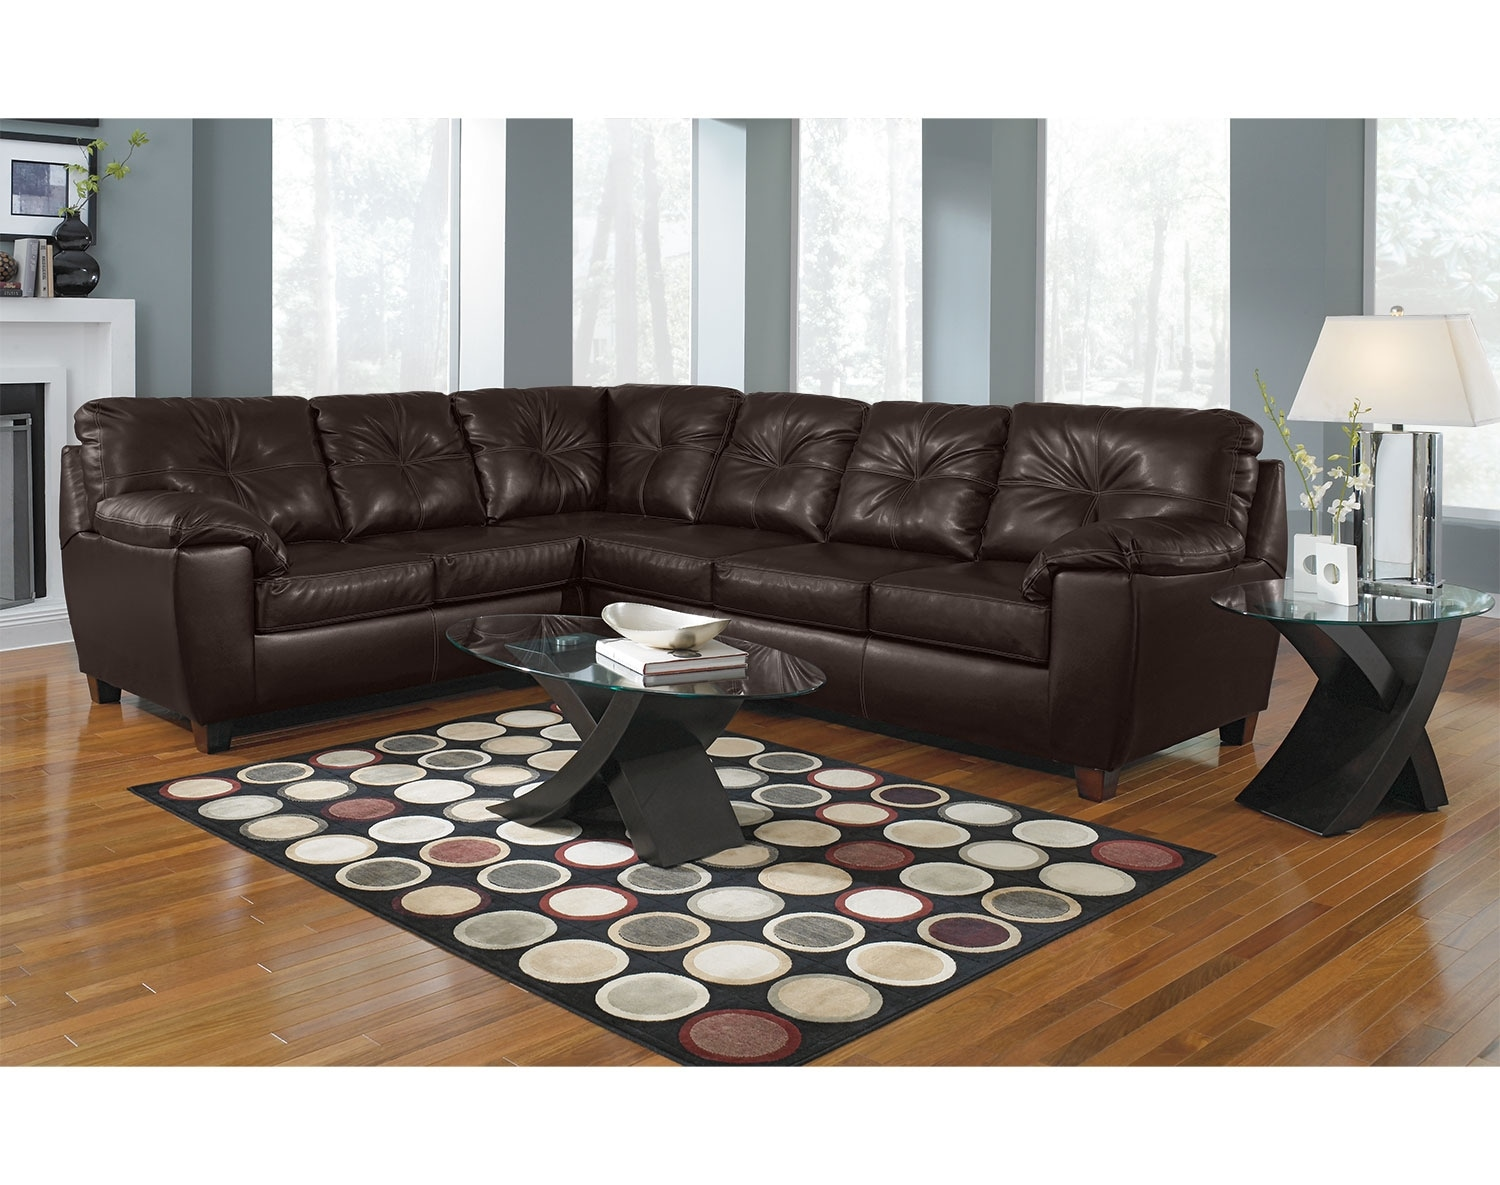 [The Rialto Brown Sectional Collection]